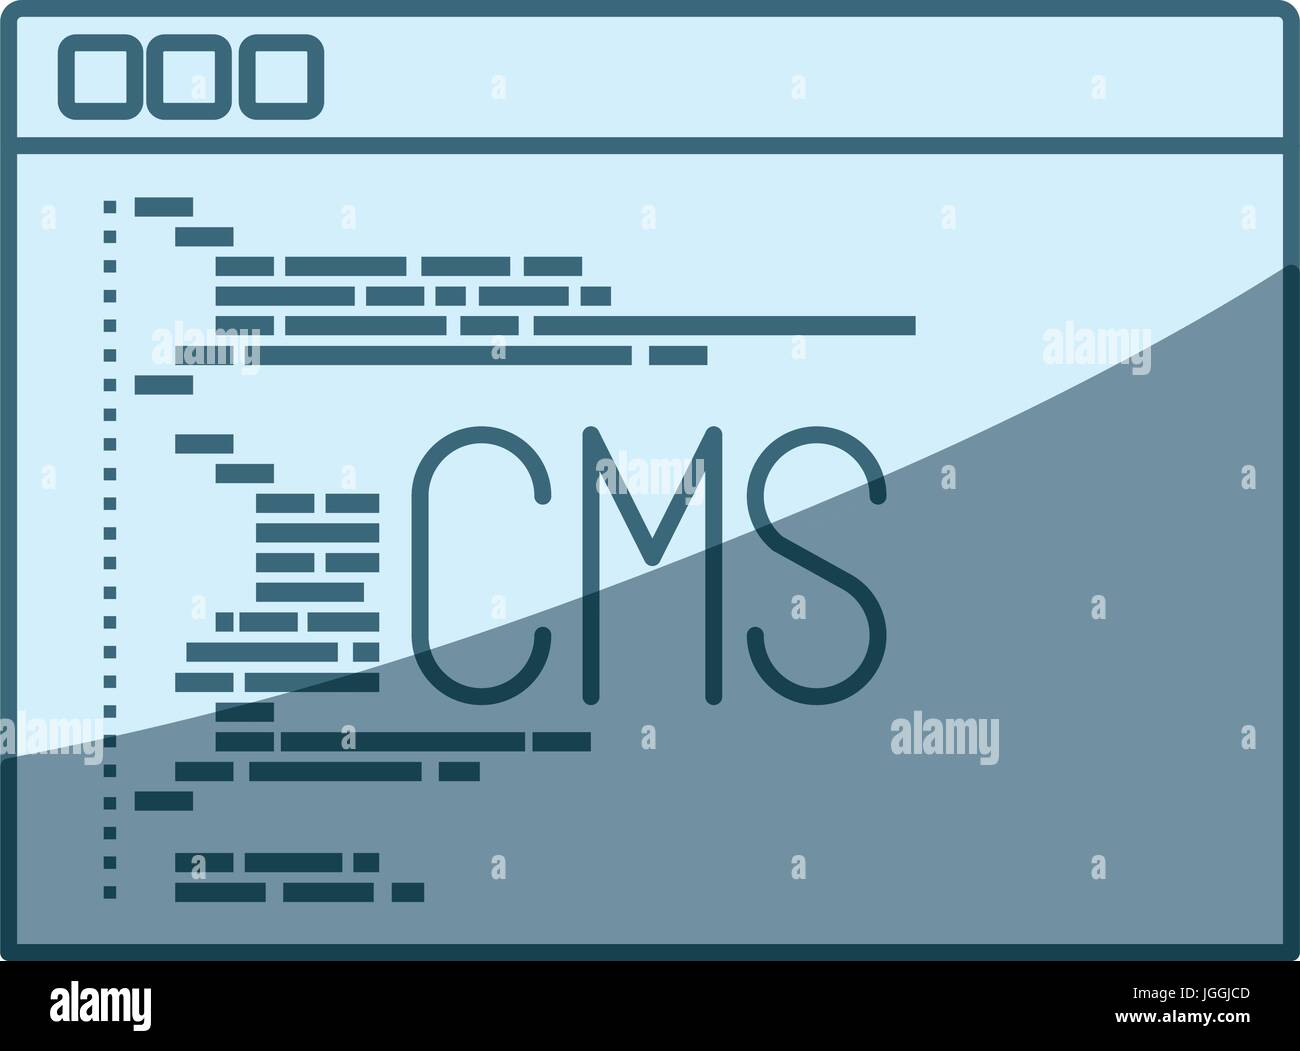 Cms Script Blue Shading Silhouette Of Programming Window With Script Code Cms